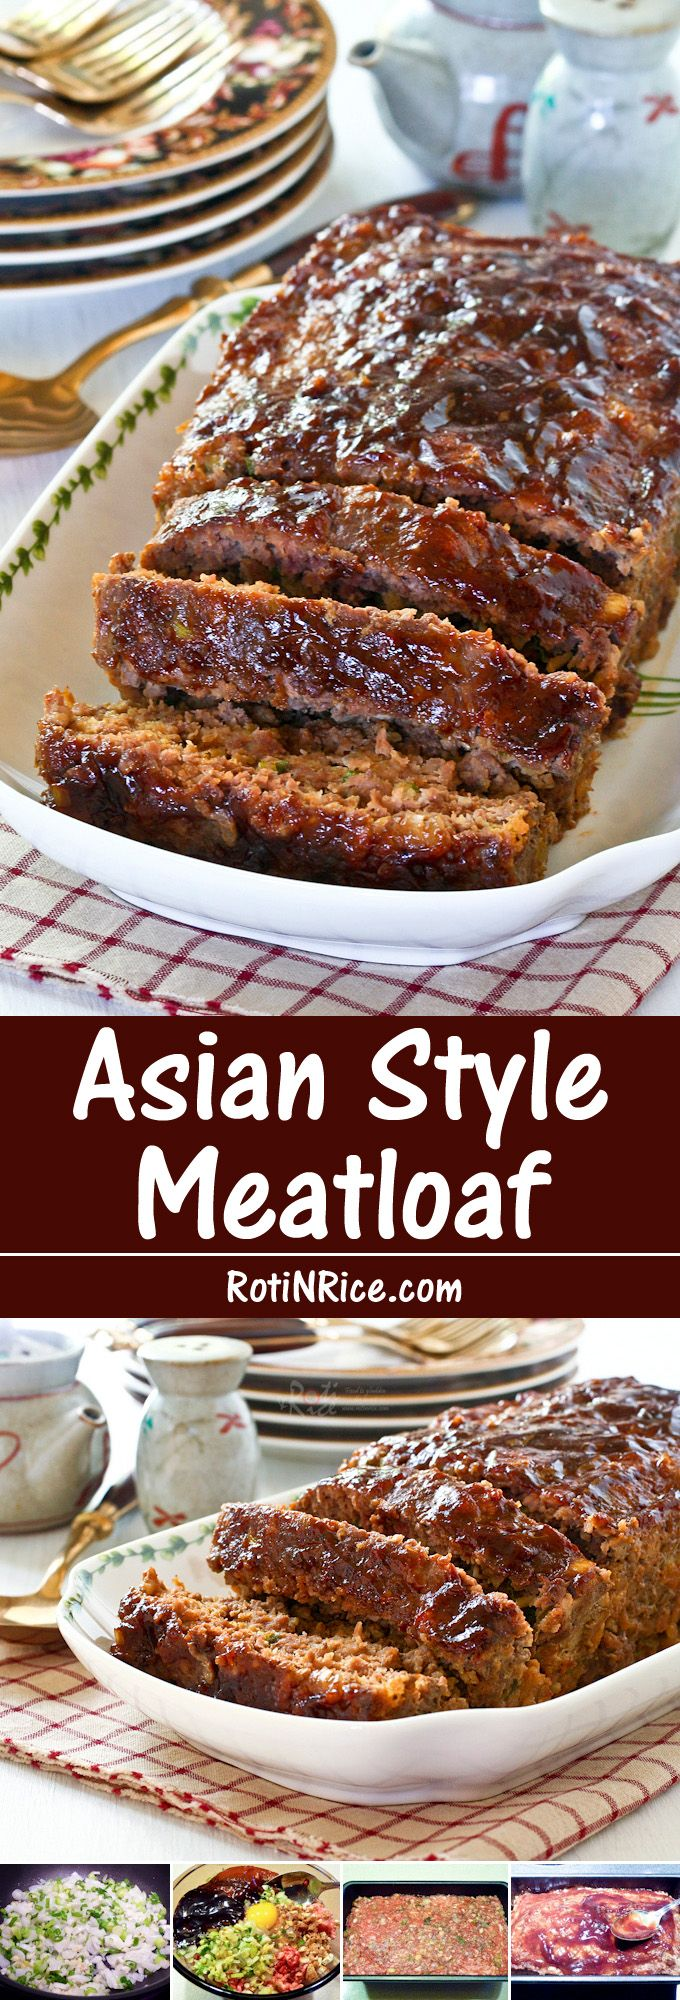 Moist and flavorful Asian Style Meatloaf flavored with hoisin and soy sauce. Delicious served with rice for a truly Asian taste. | Food to gladden the heart at RotiNRice.com